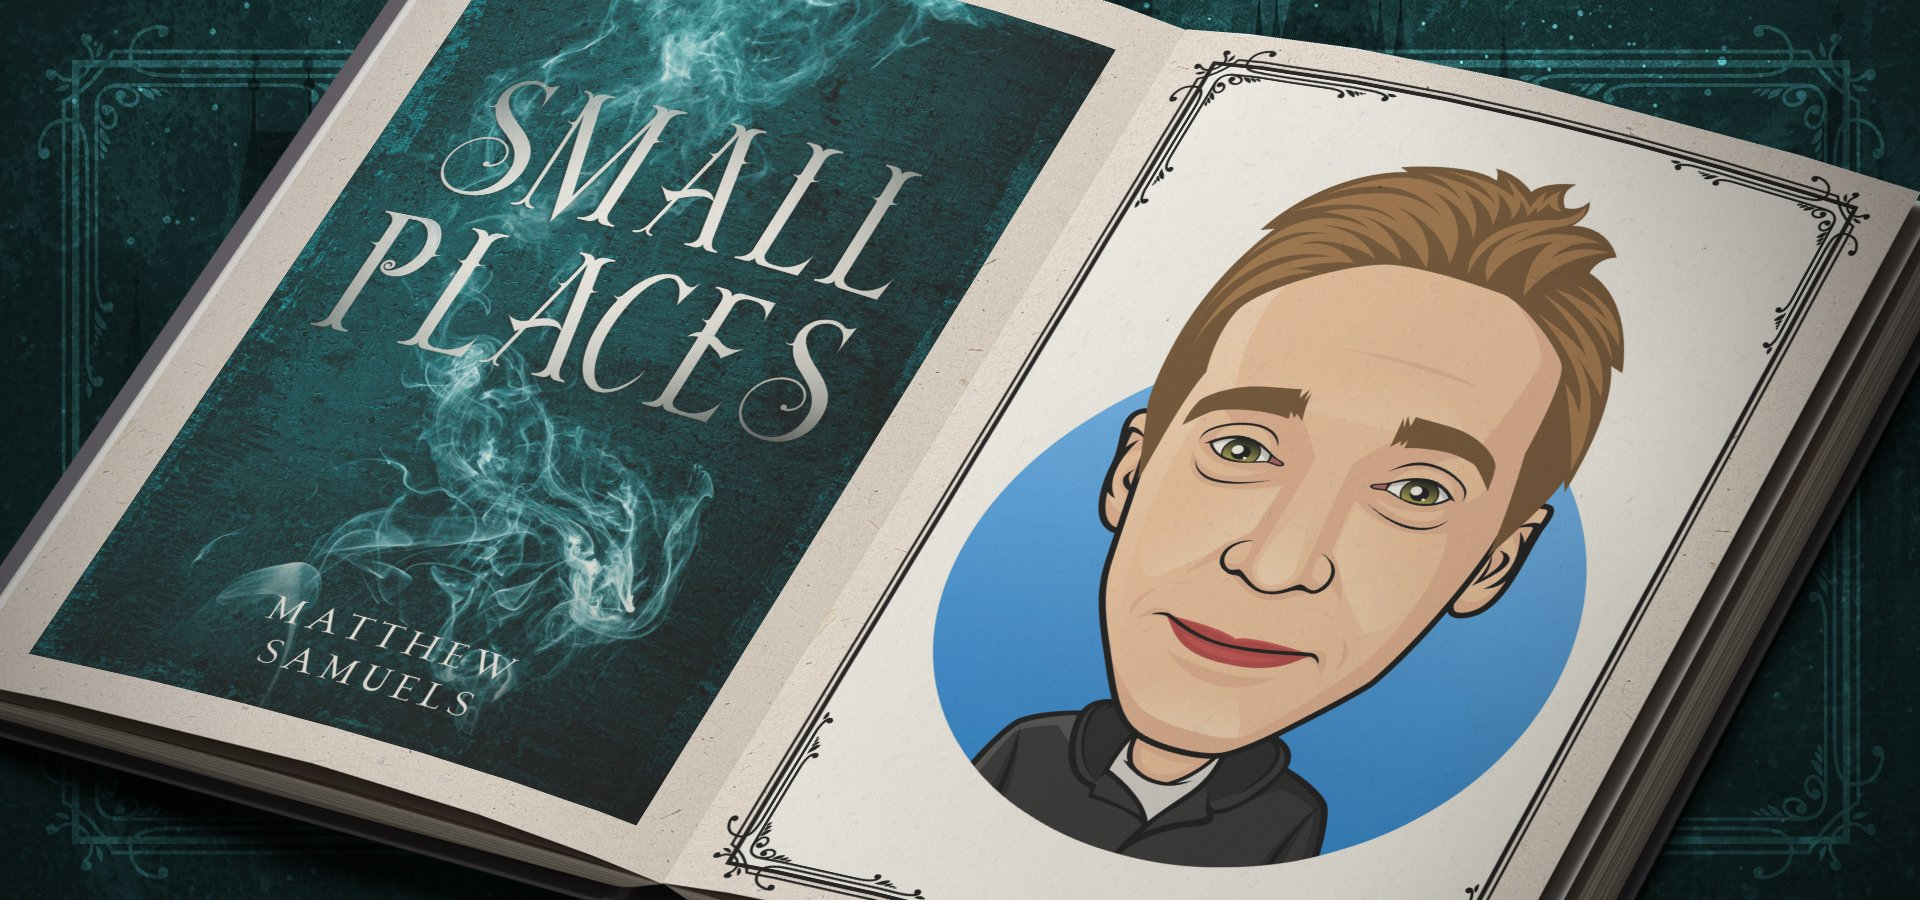 Small Places by Matthew Samuels